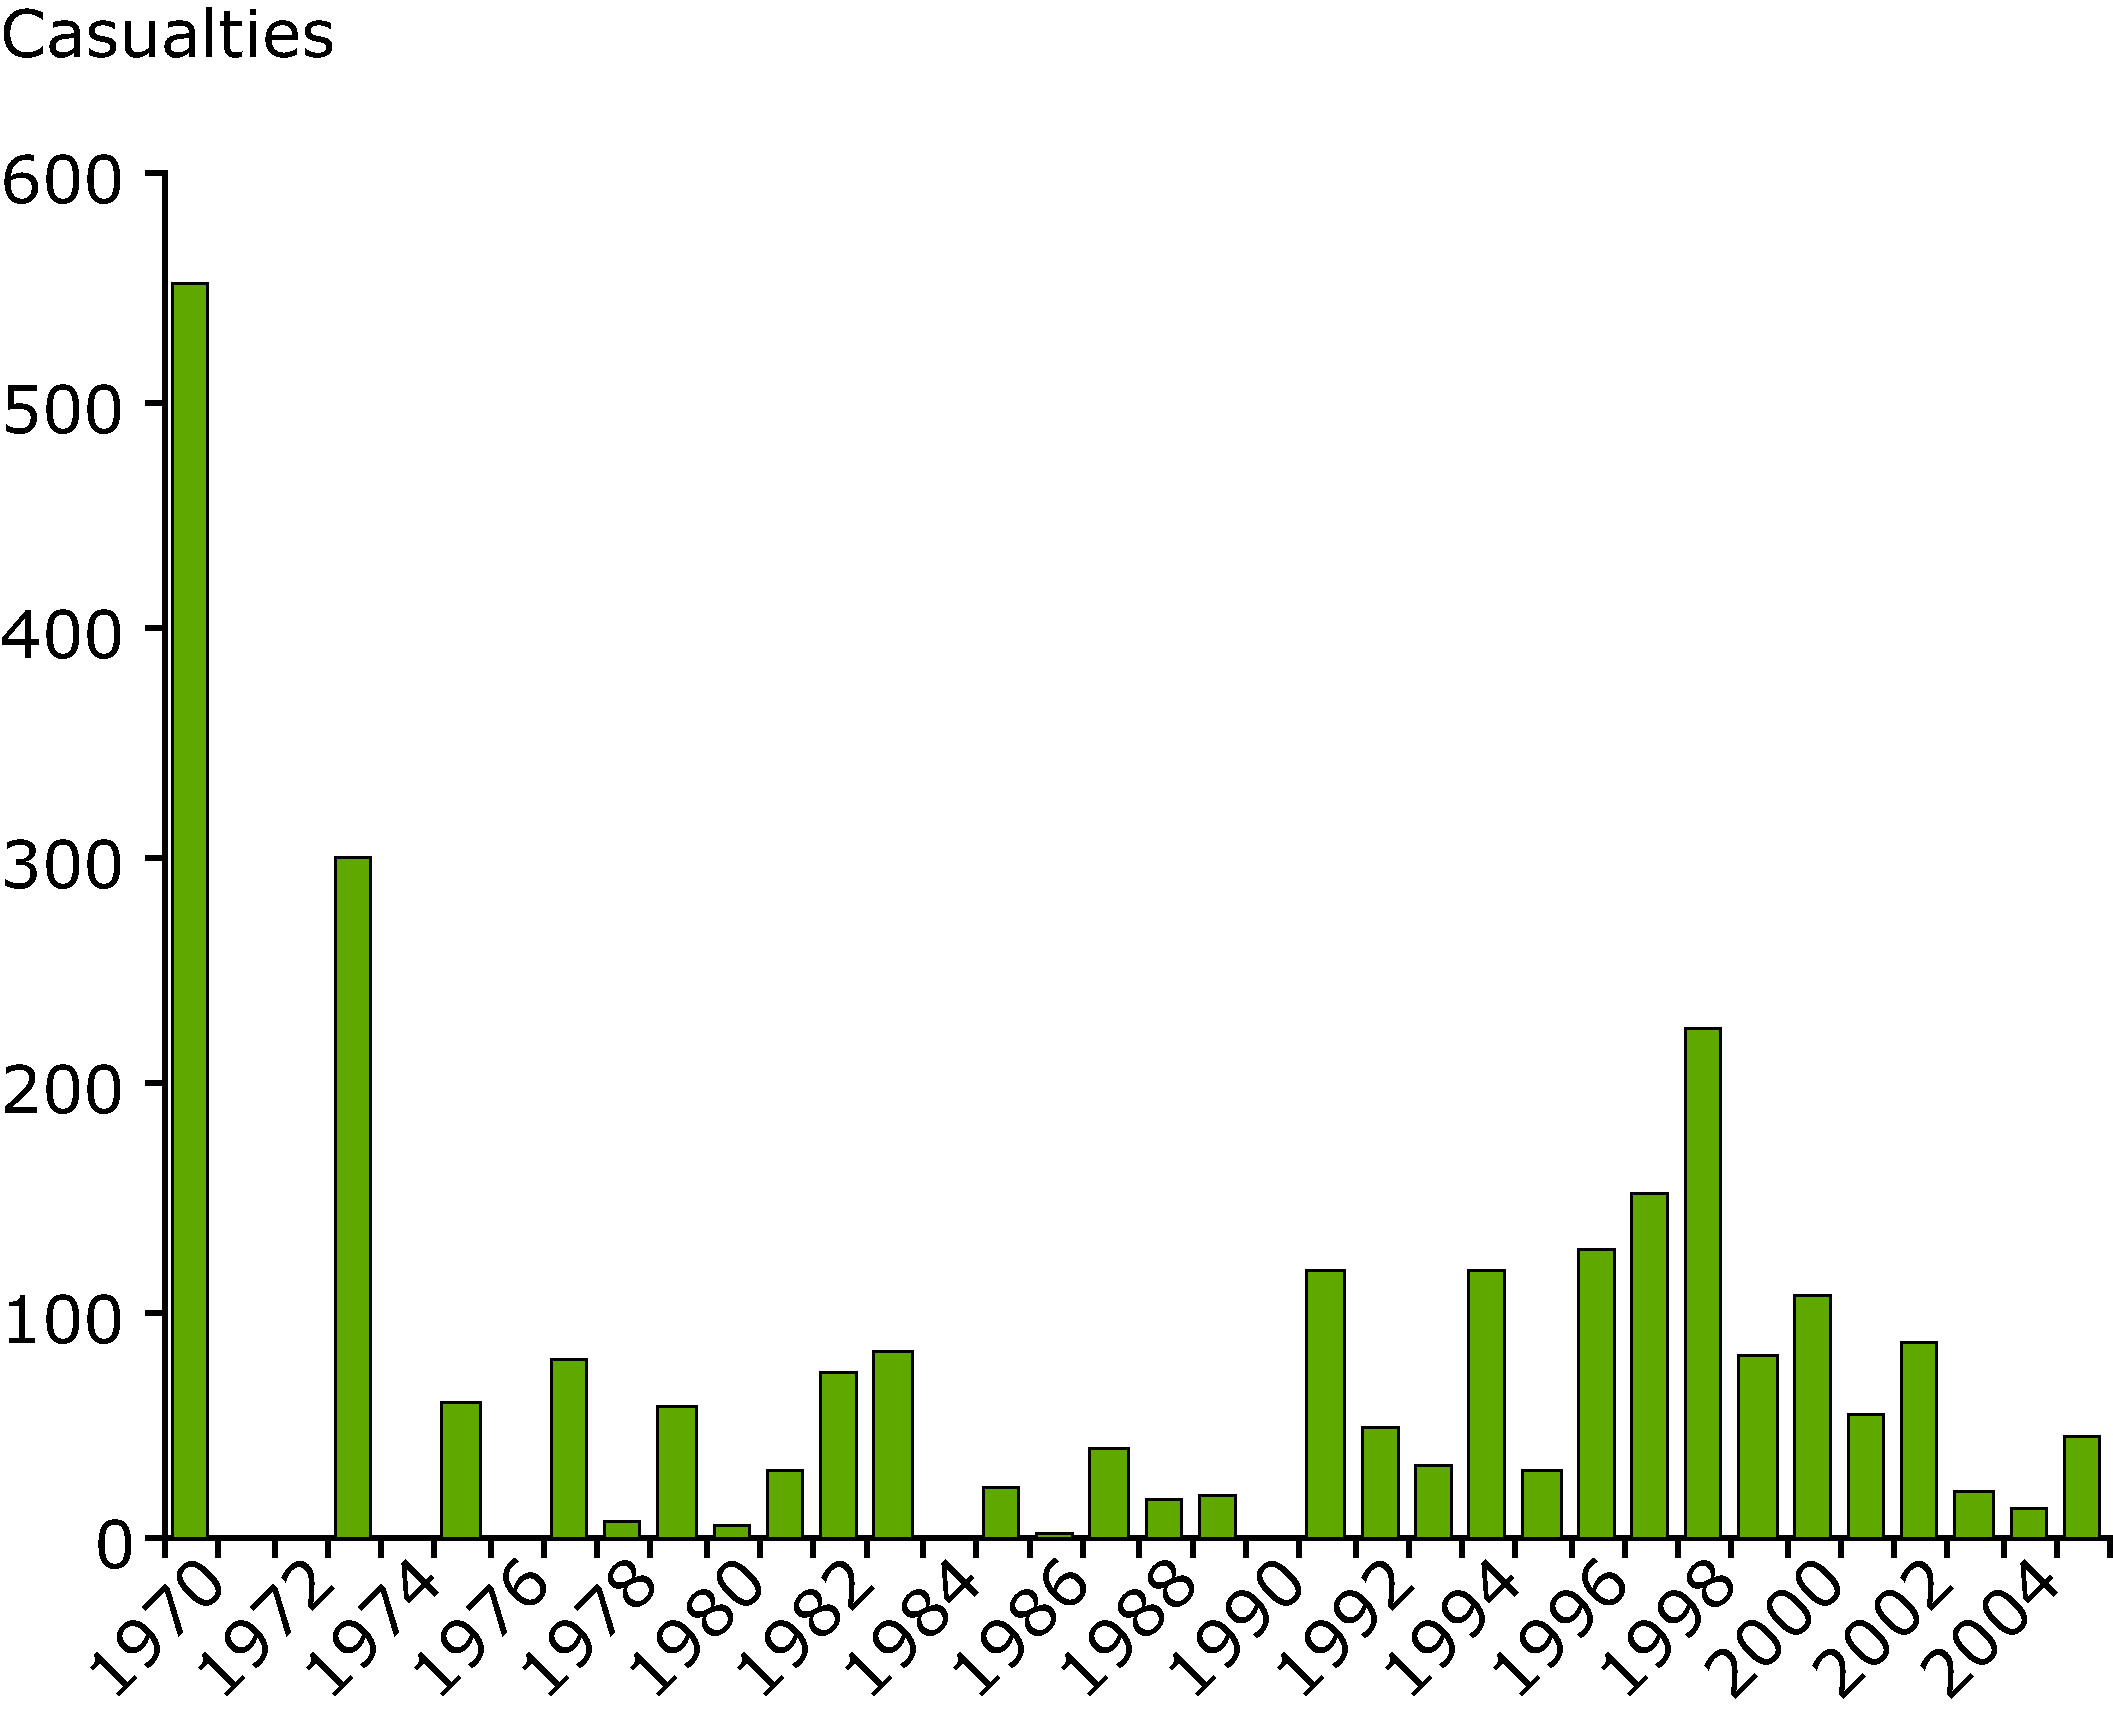 Number of casualties caused by flood disasters in the EU 1970-2005